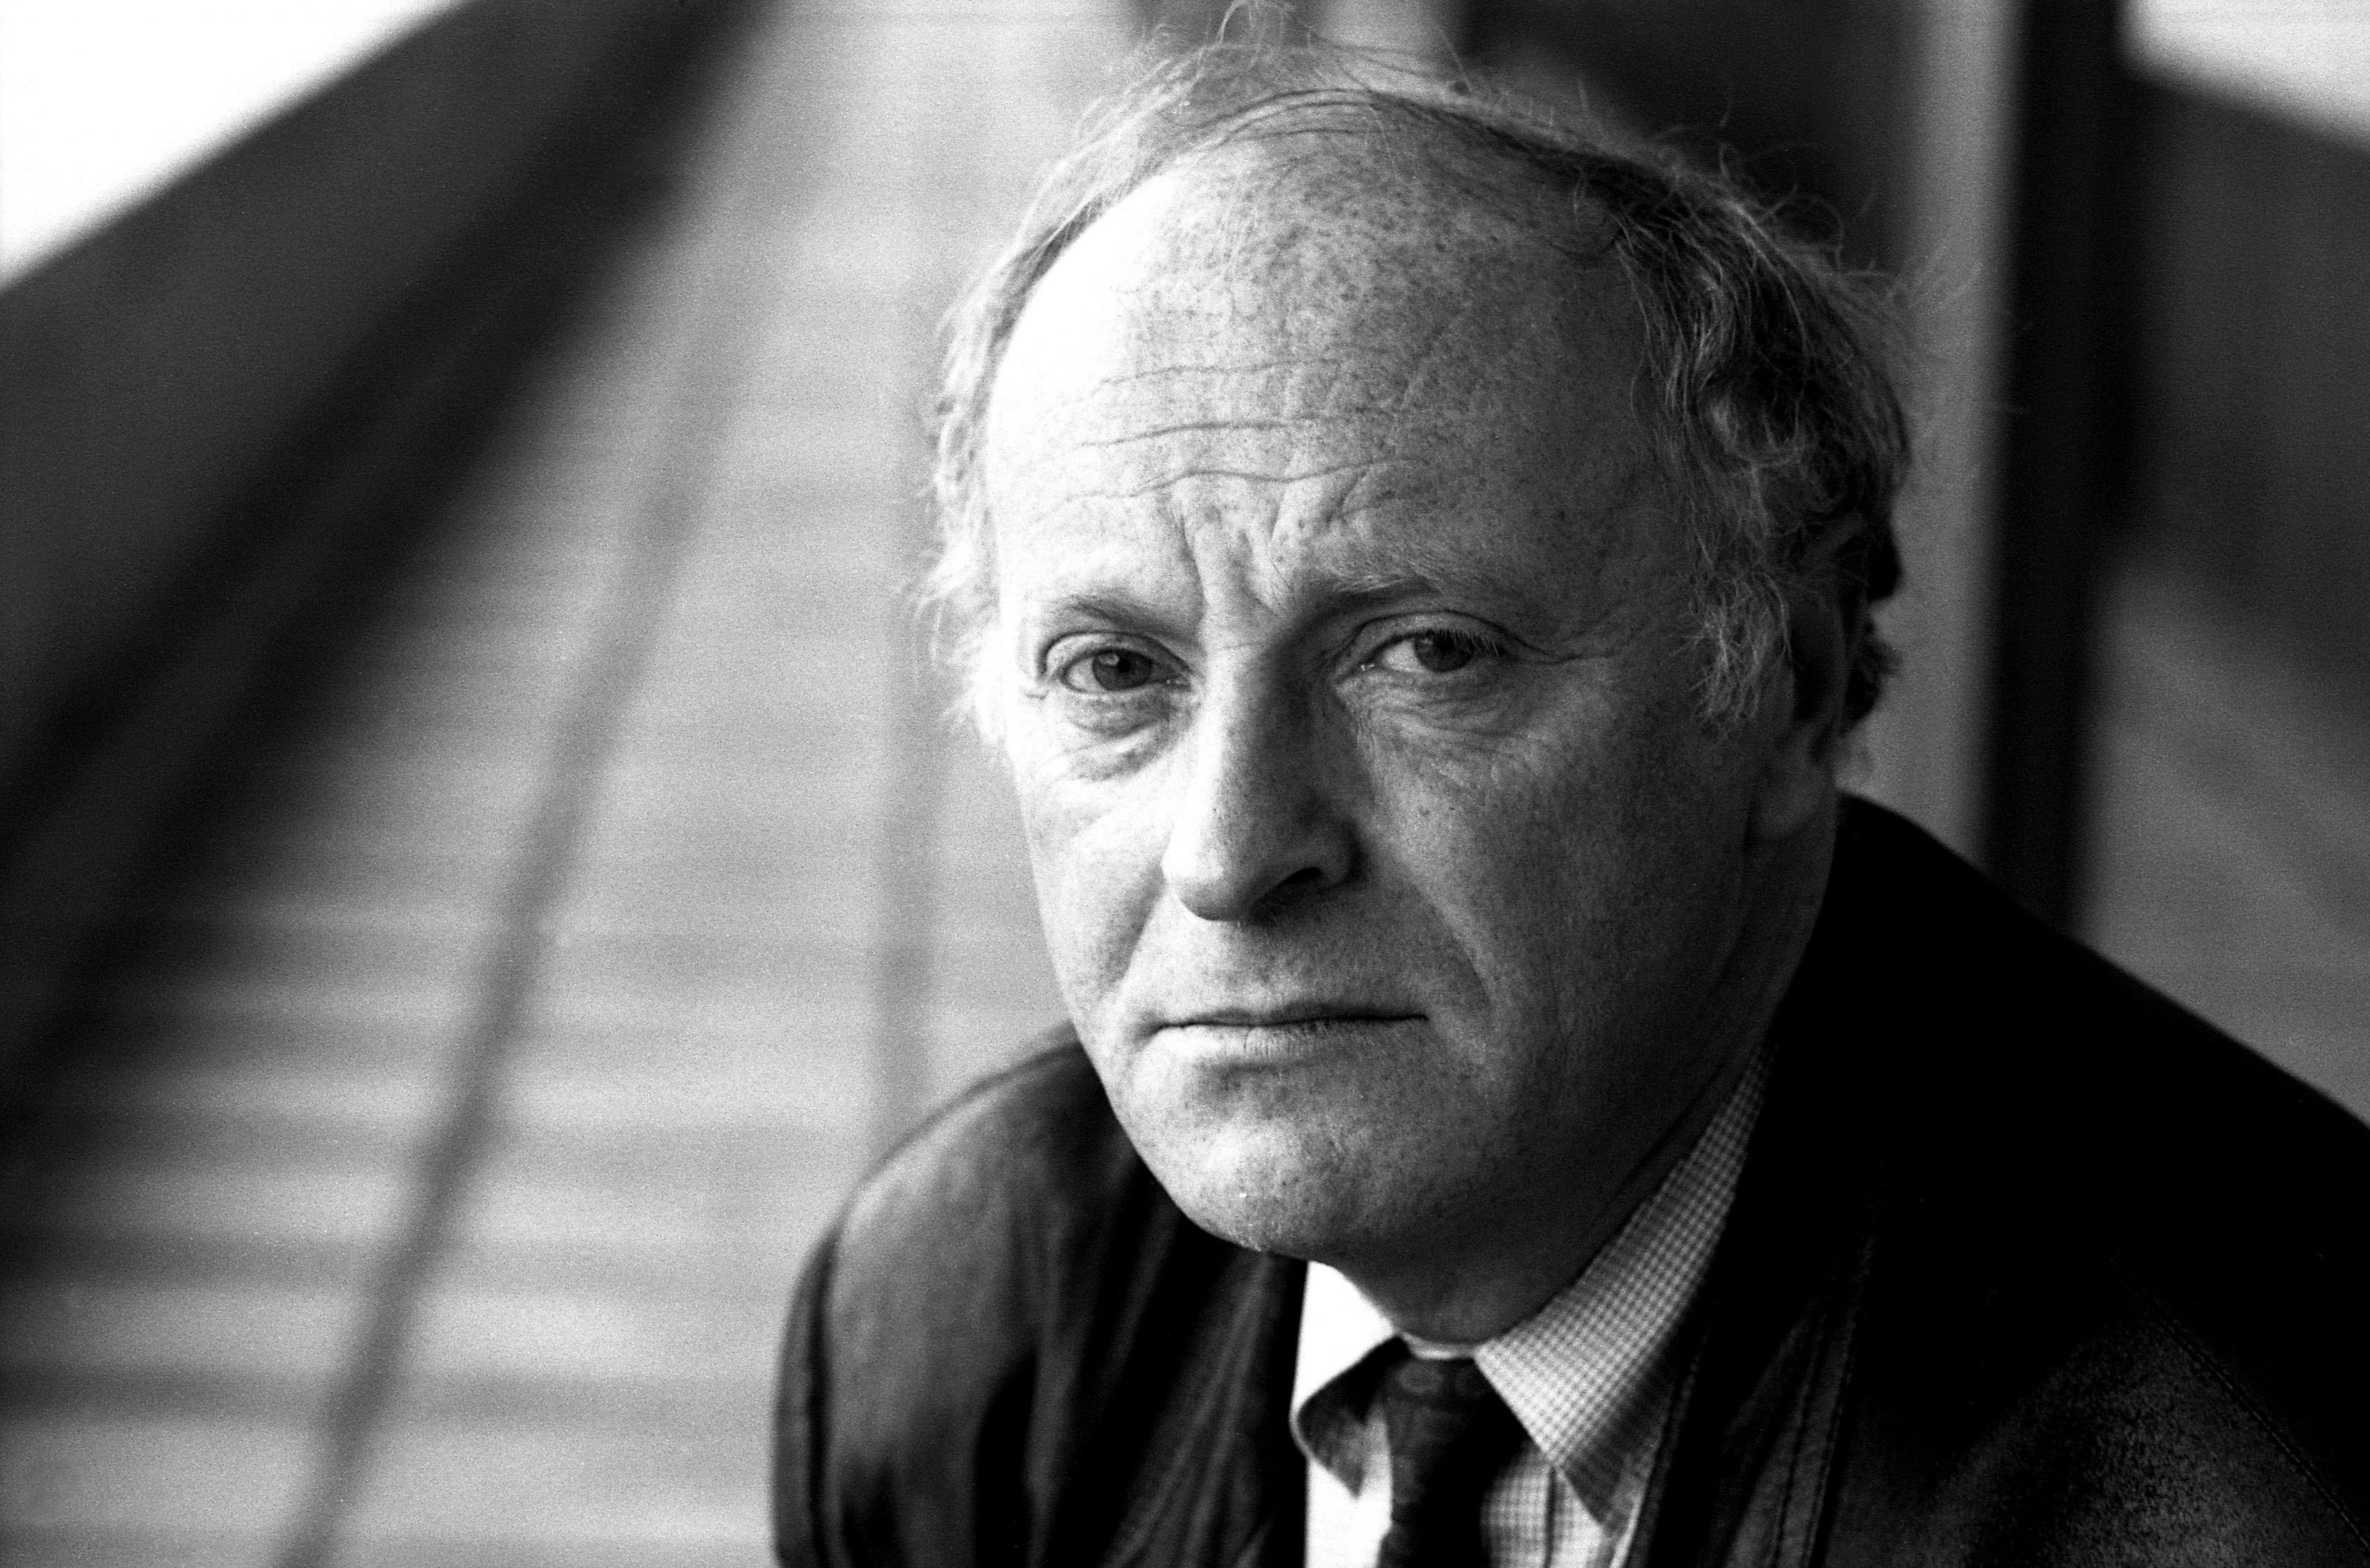 The search for one's self: key places in Joseph Brodsky's life